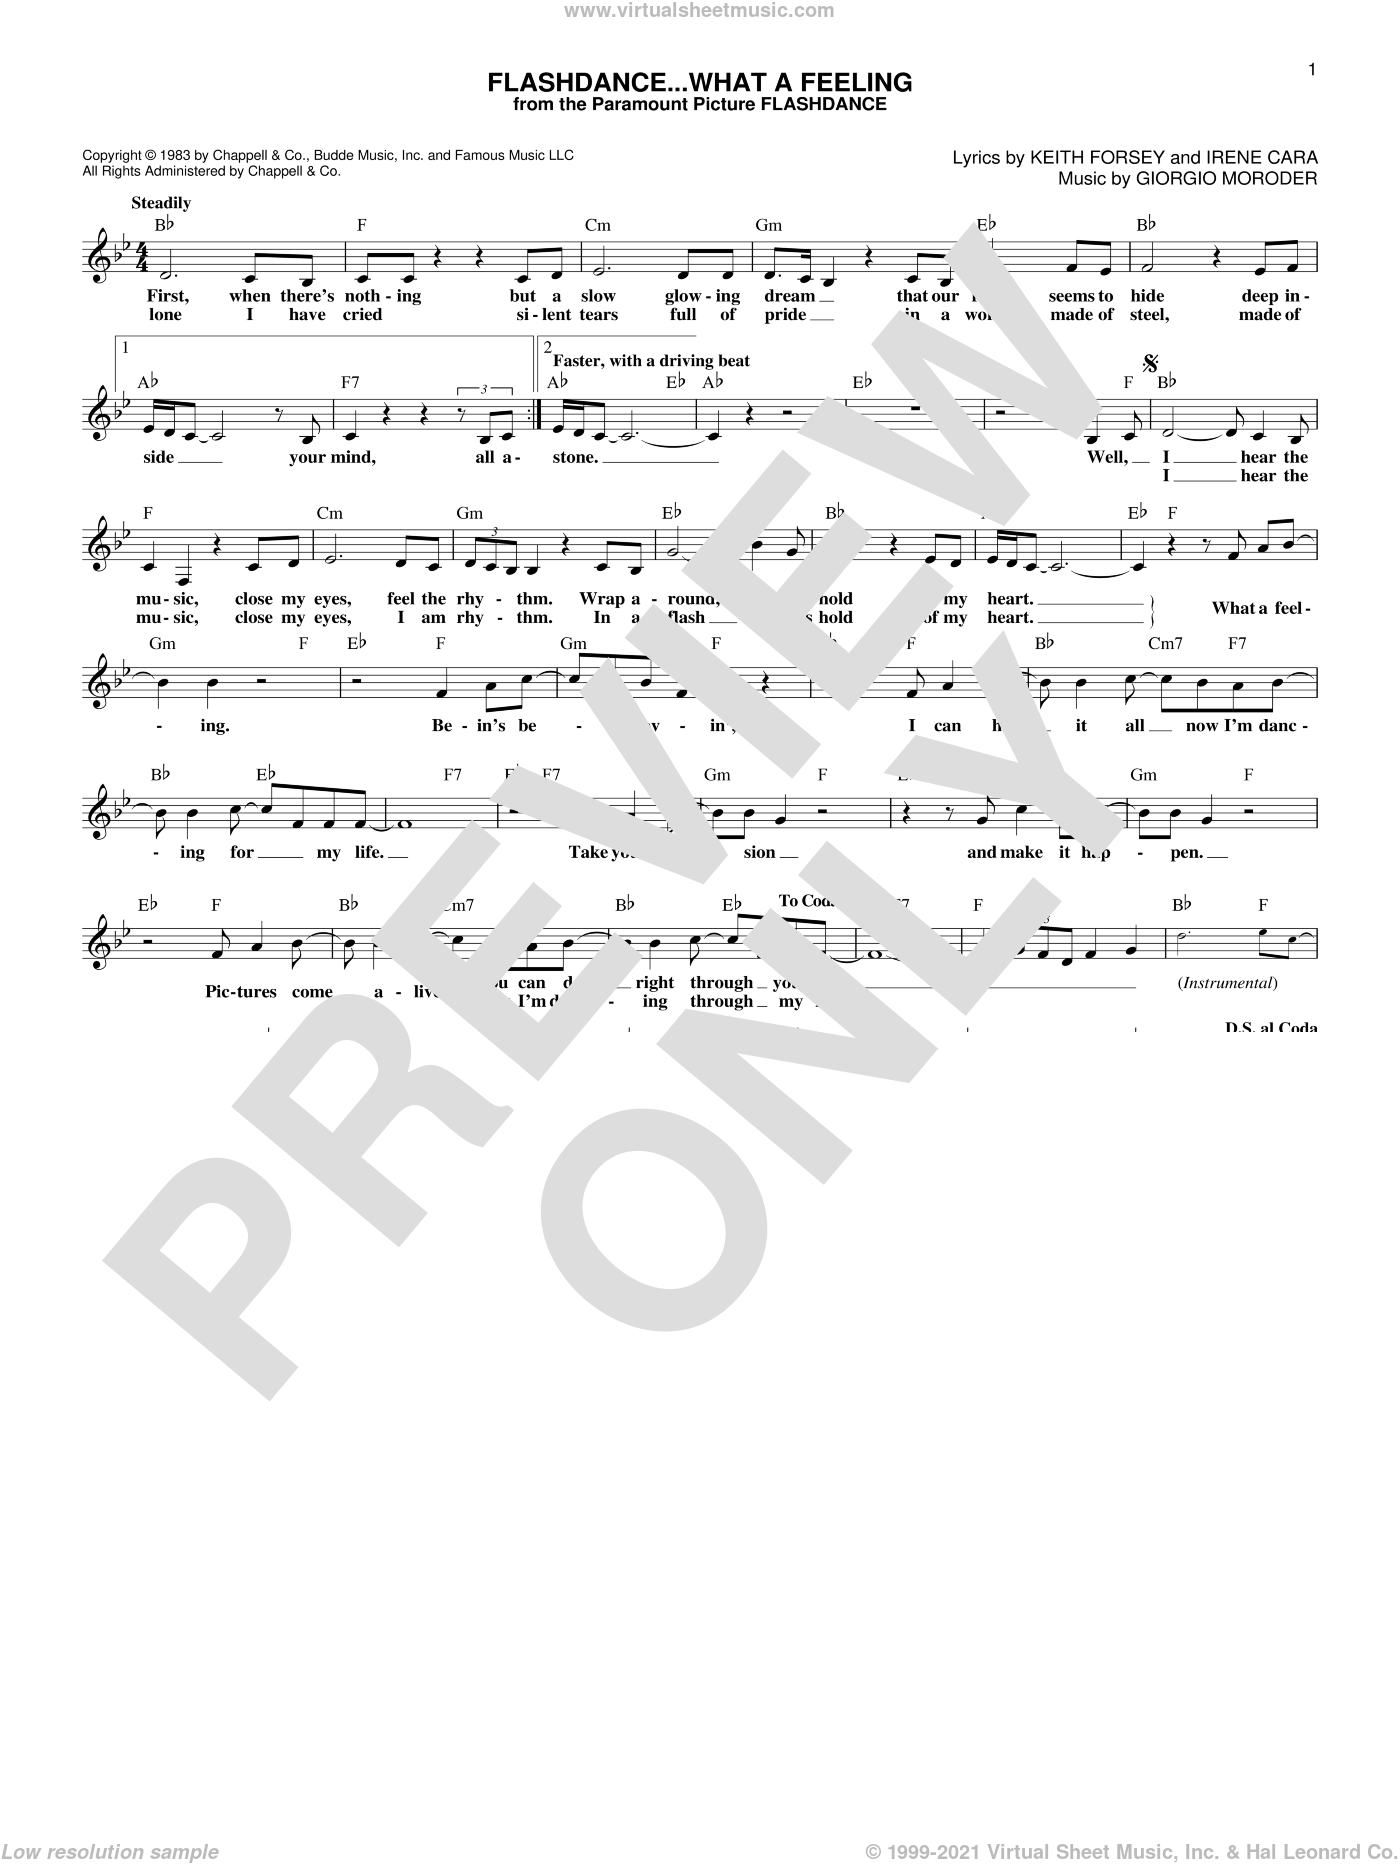 Flashdance...What A Feeling sheet music for voice and other instruments (fake book) by Irene Cara, Giorgio Moroder and Keith Forsey, intermediate skill level